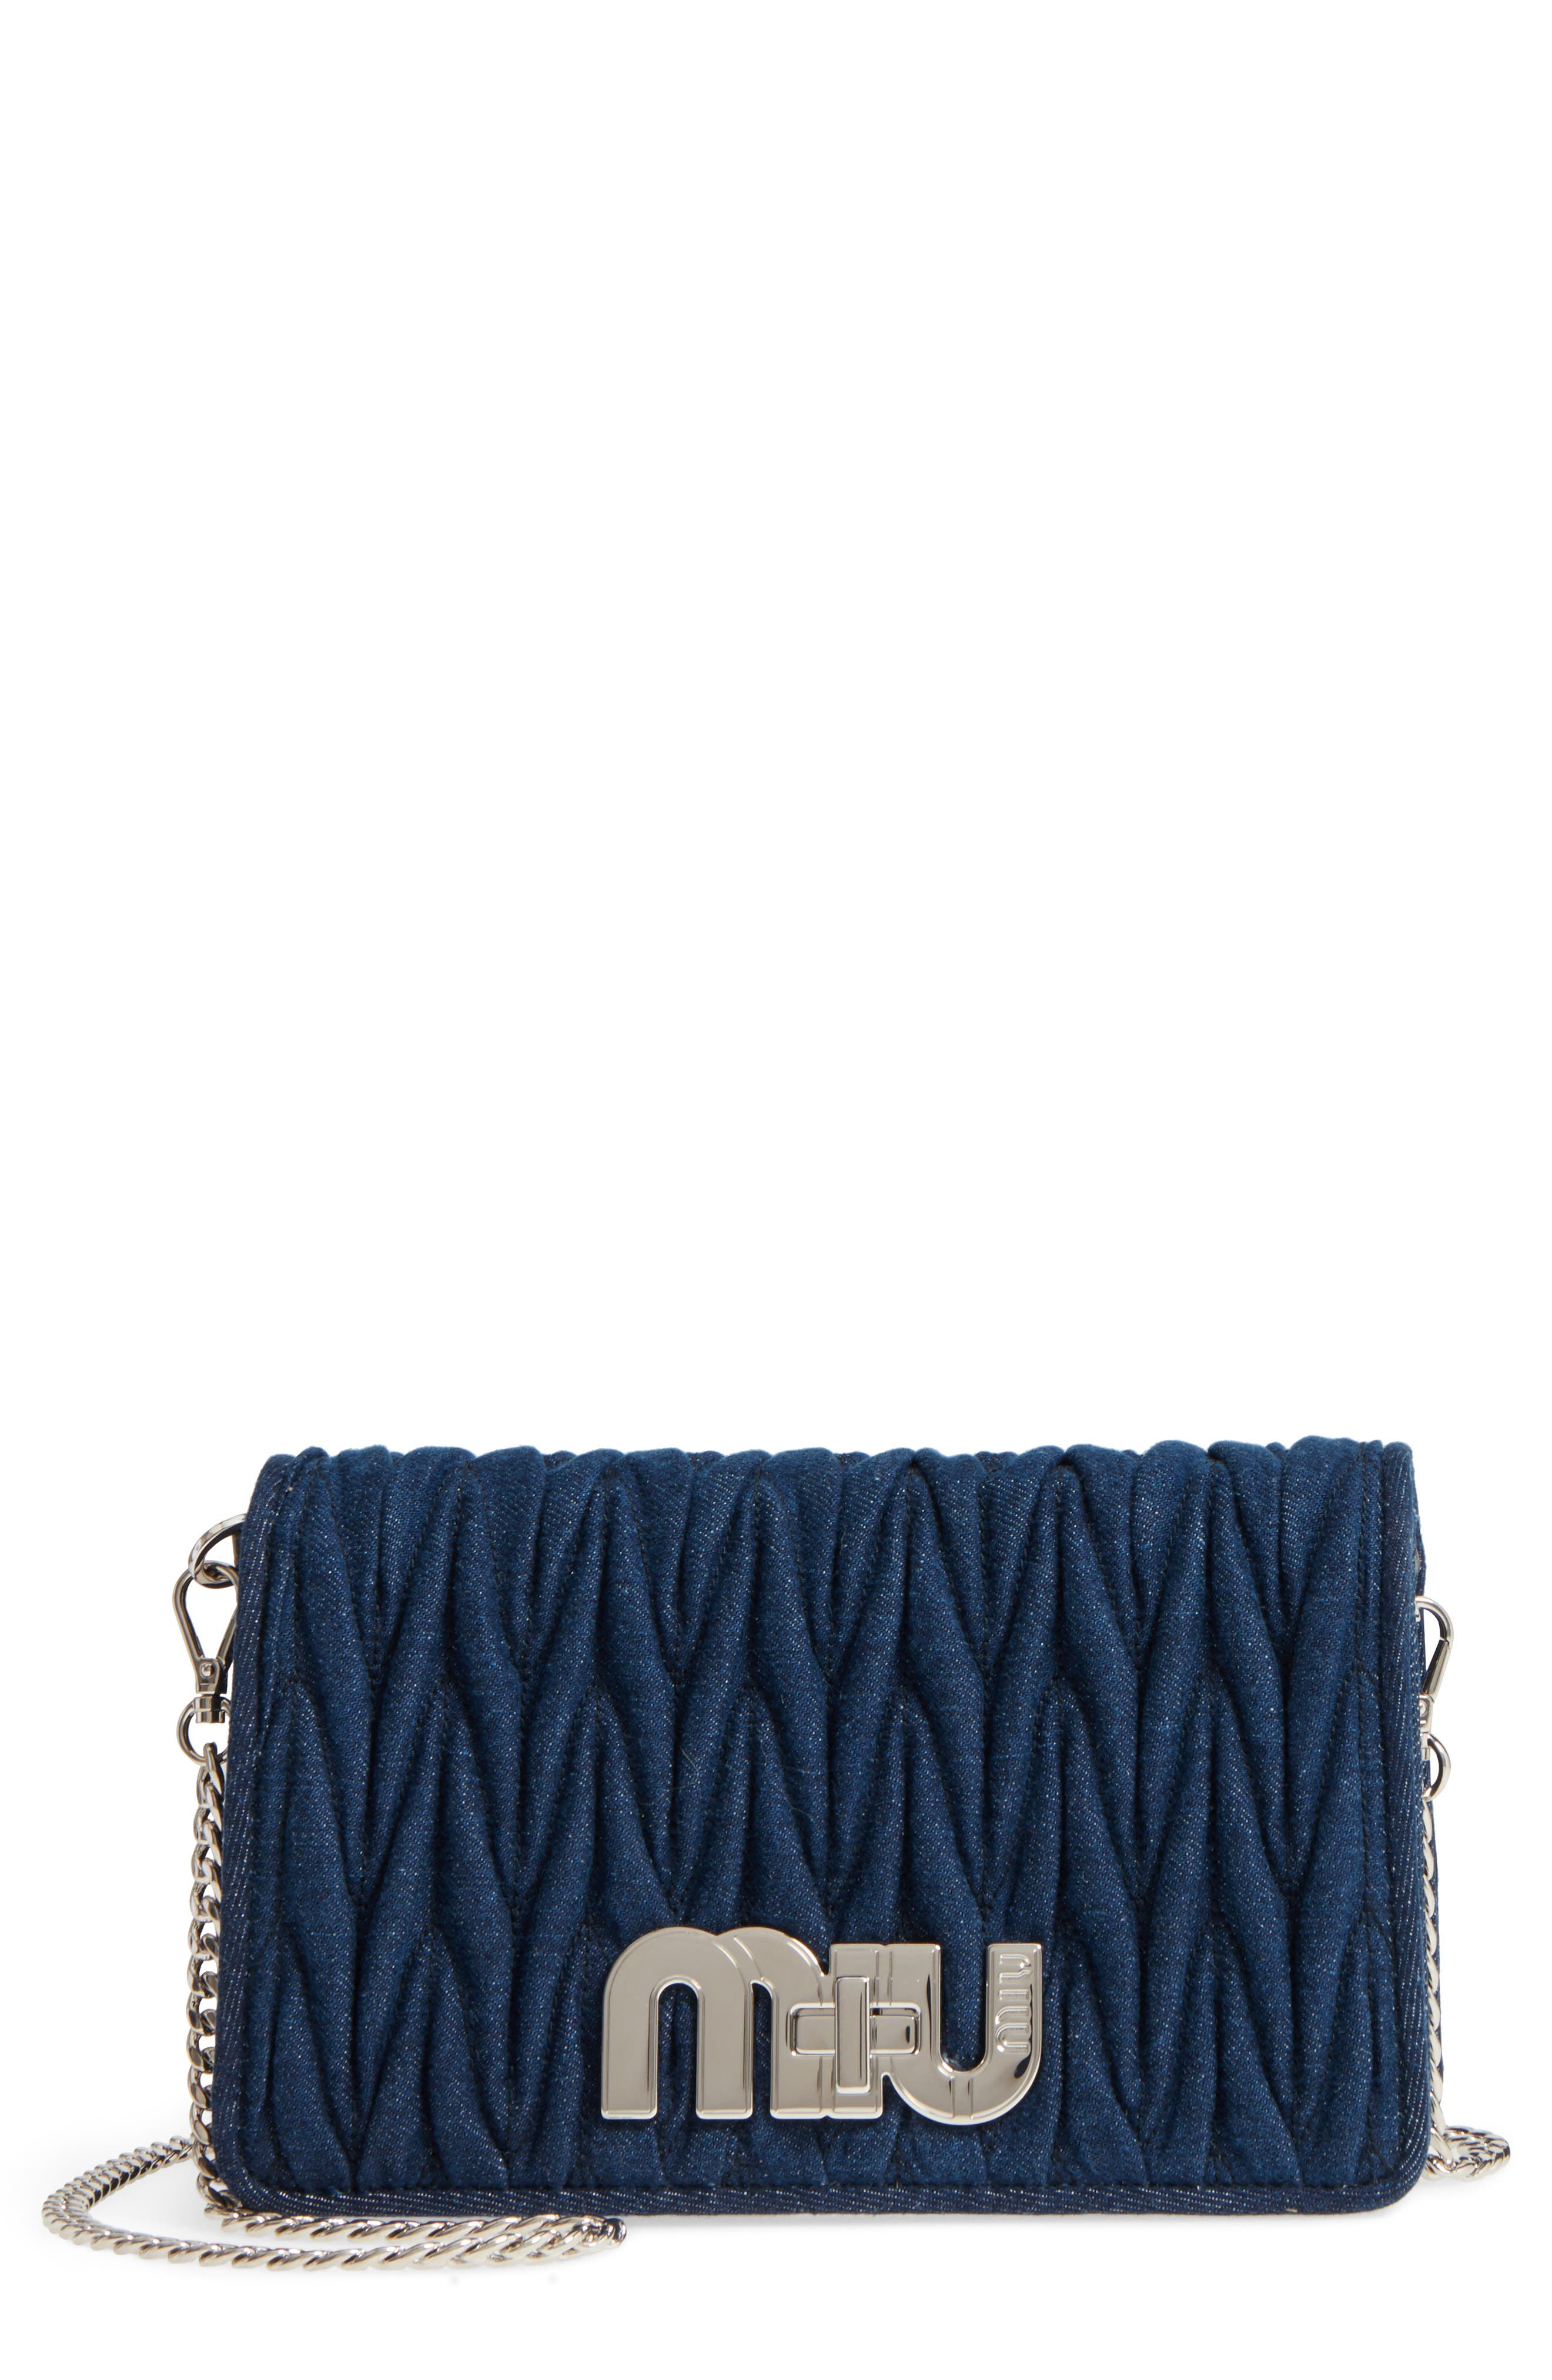 Matelassé Denim Crossbody Clutch,                         Main,                         color, Bleu